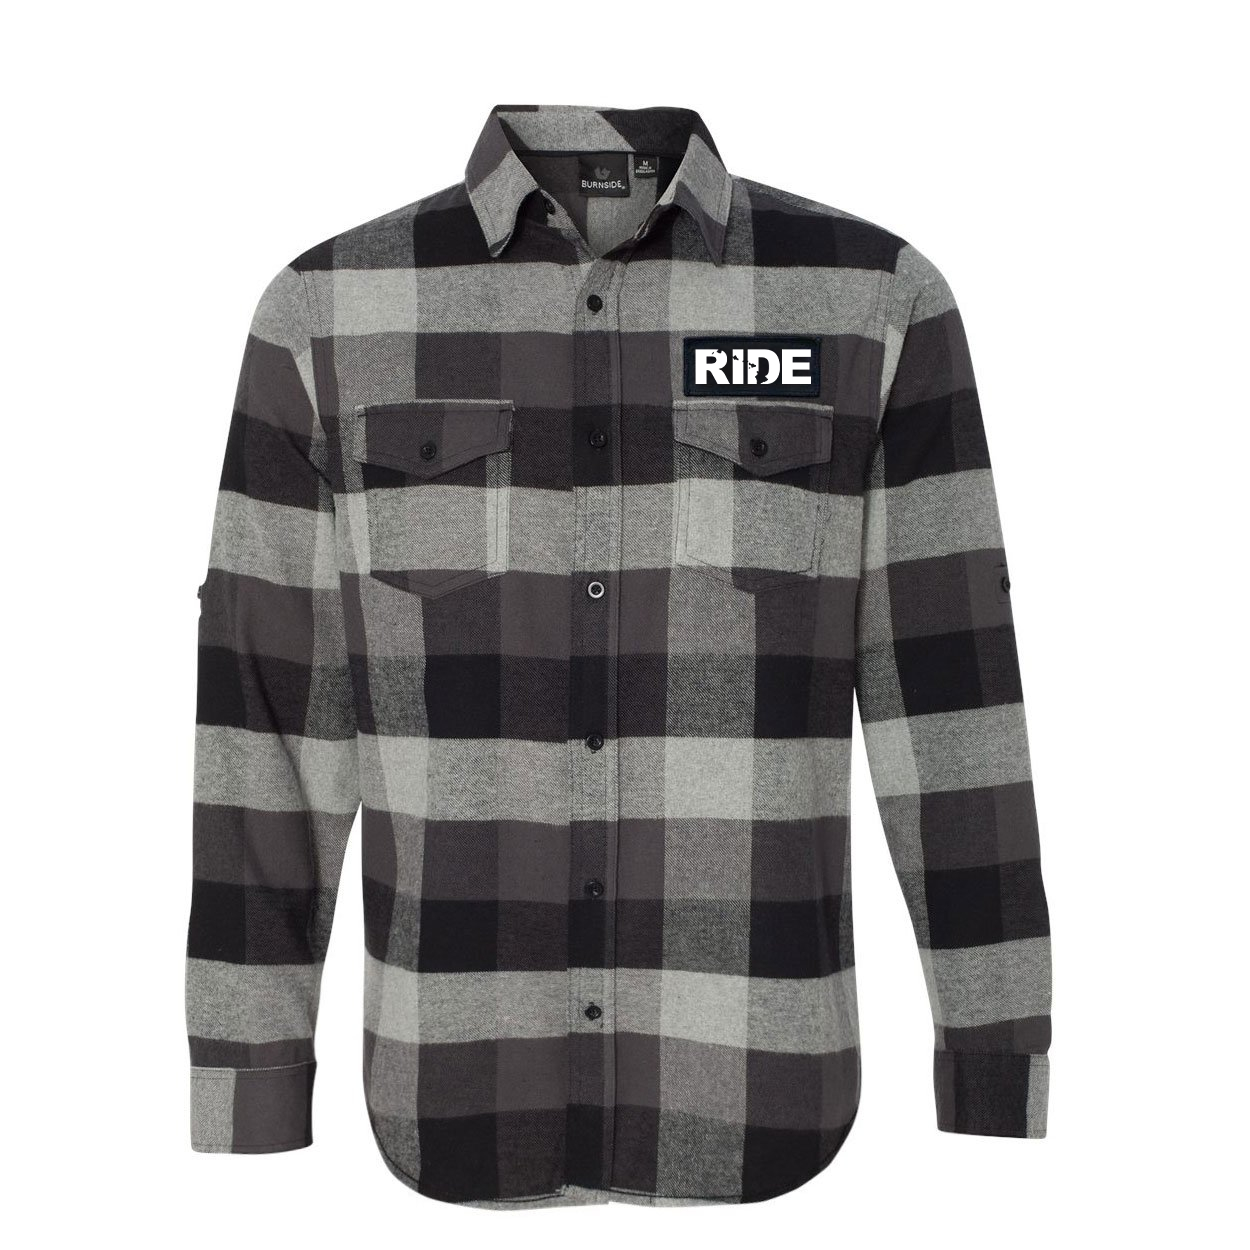 Ride Hawaii Classic Unisex Long Sleeve Woven Patch Flannel Shirt Black/Gray (White Logo)